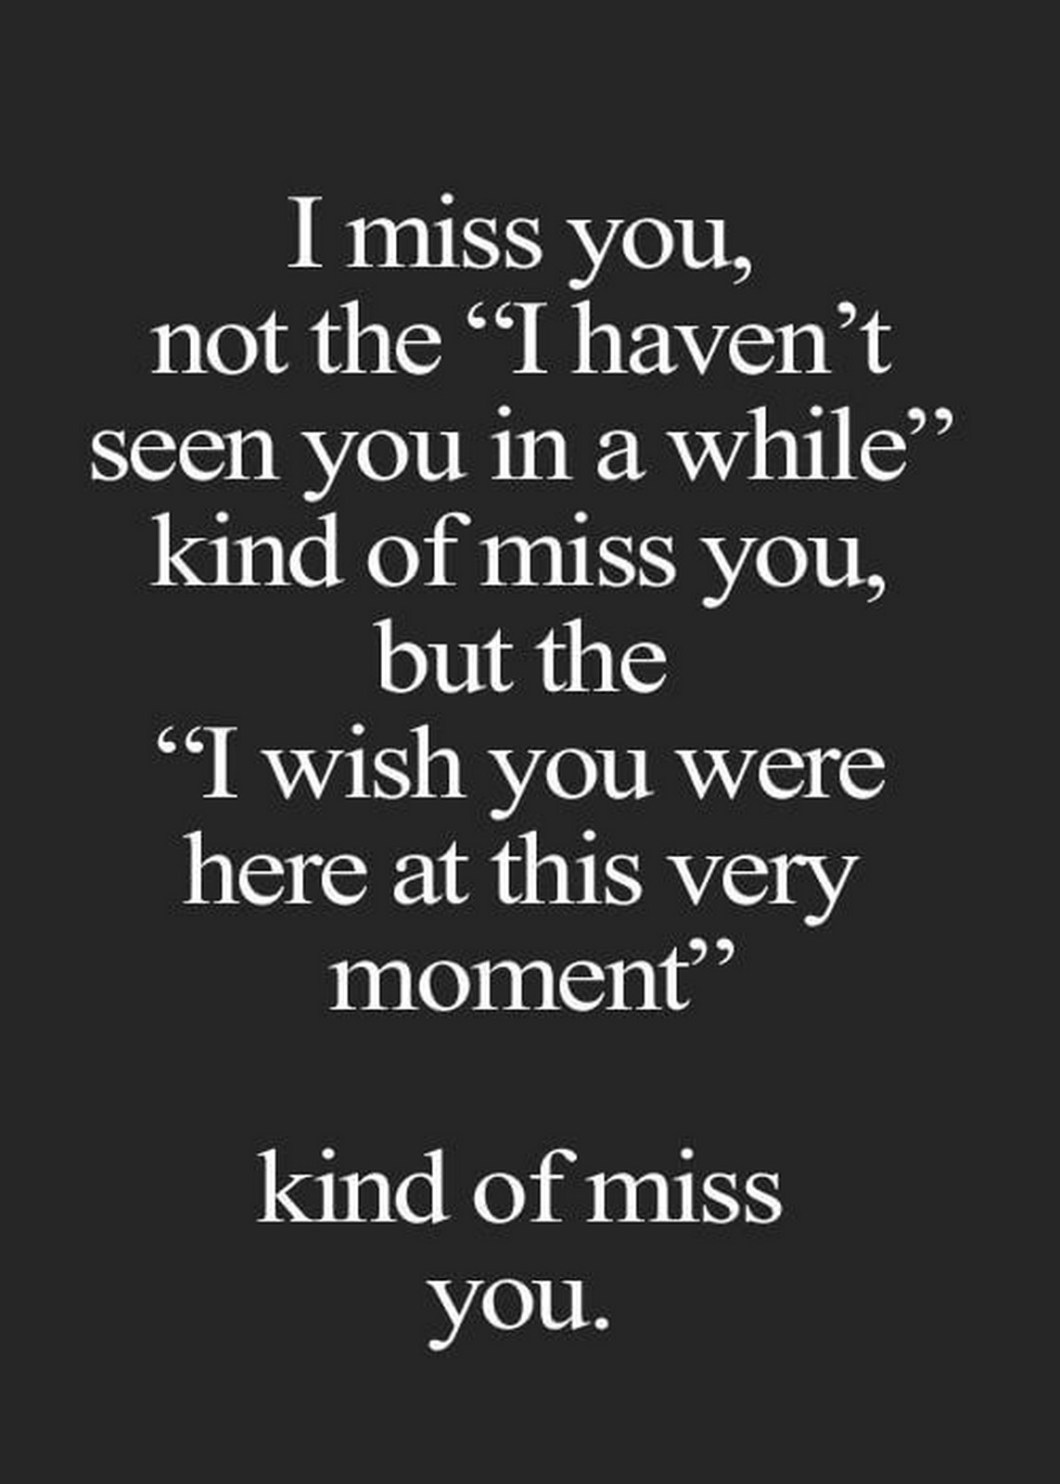 """55 Romantic Quotes - """"I miss you, not the """"I haven't seen you in a while"""" kind of miss you, but the """"I wish you were here at this very moment"""" kind of miss you."""""""